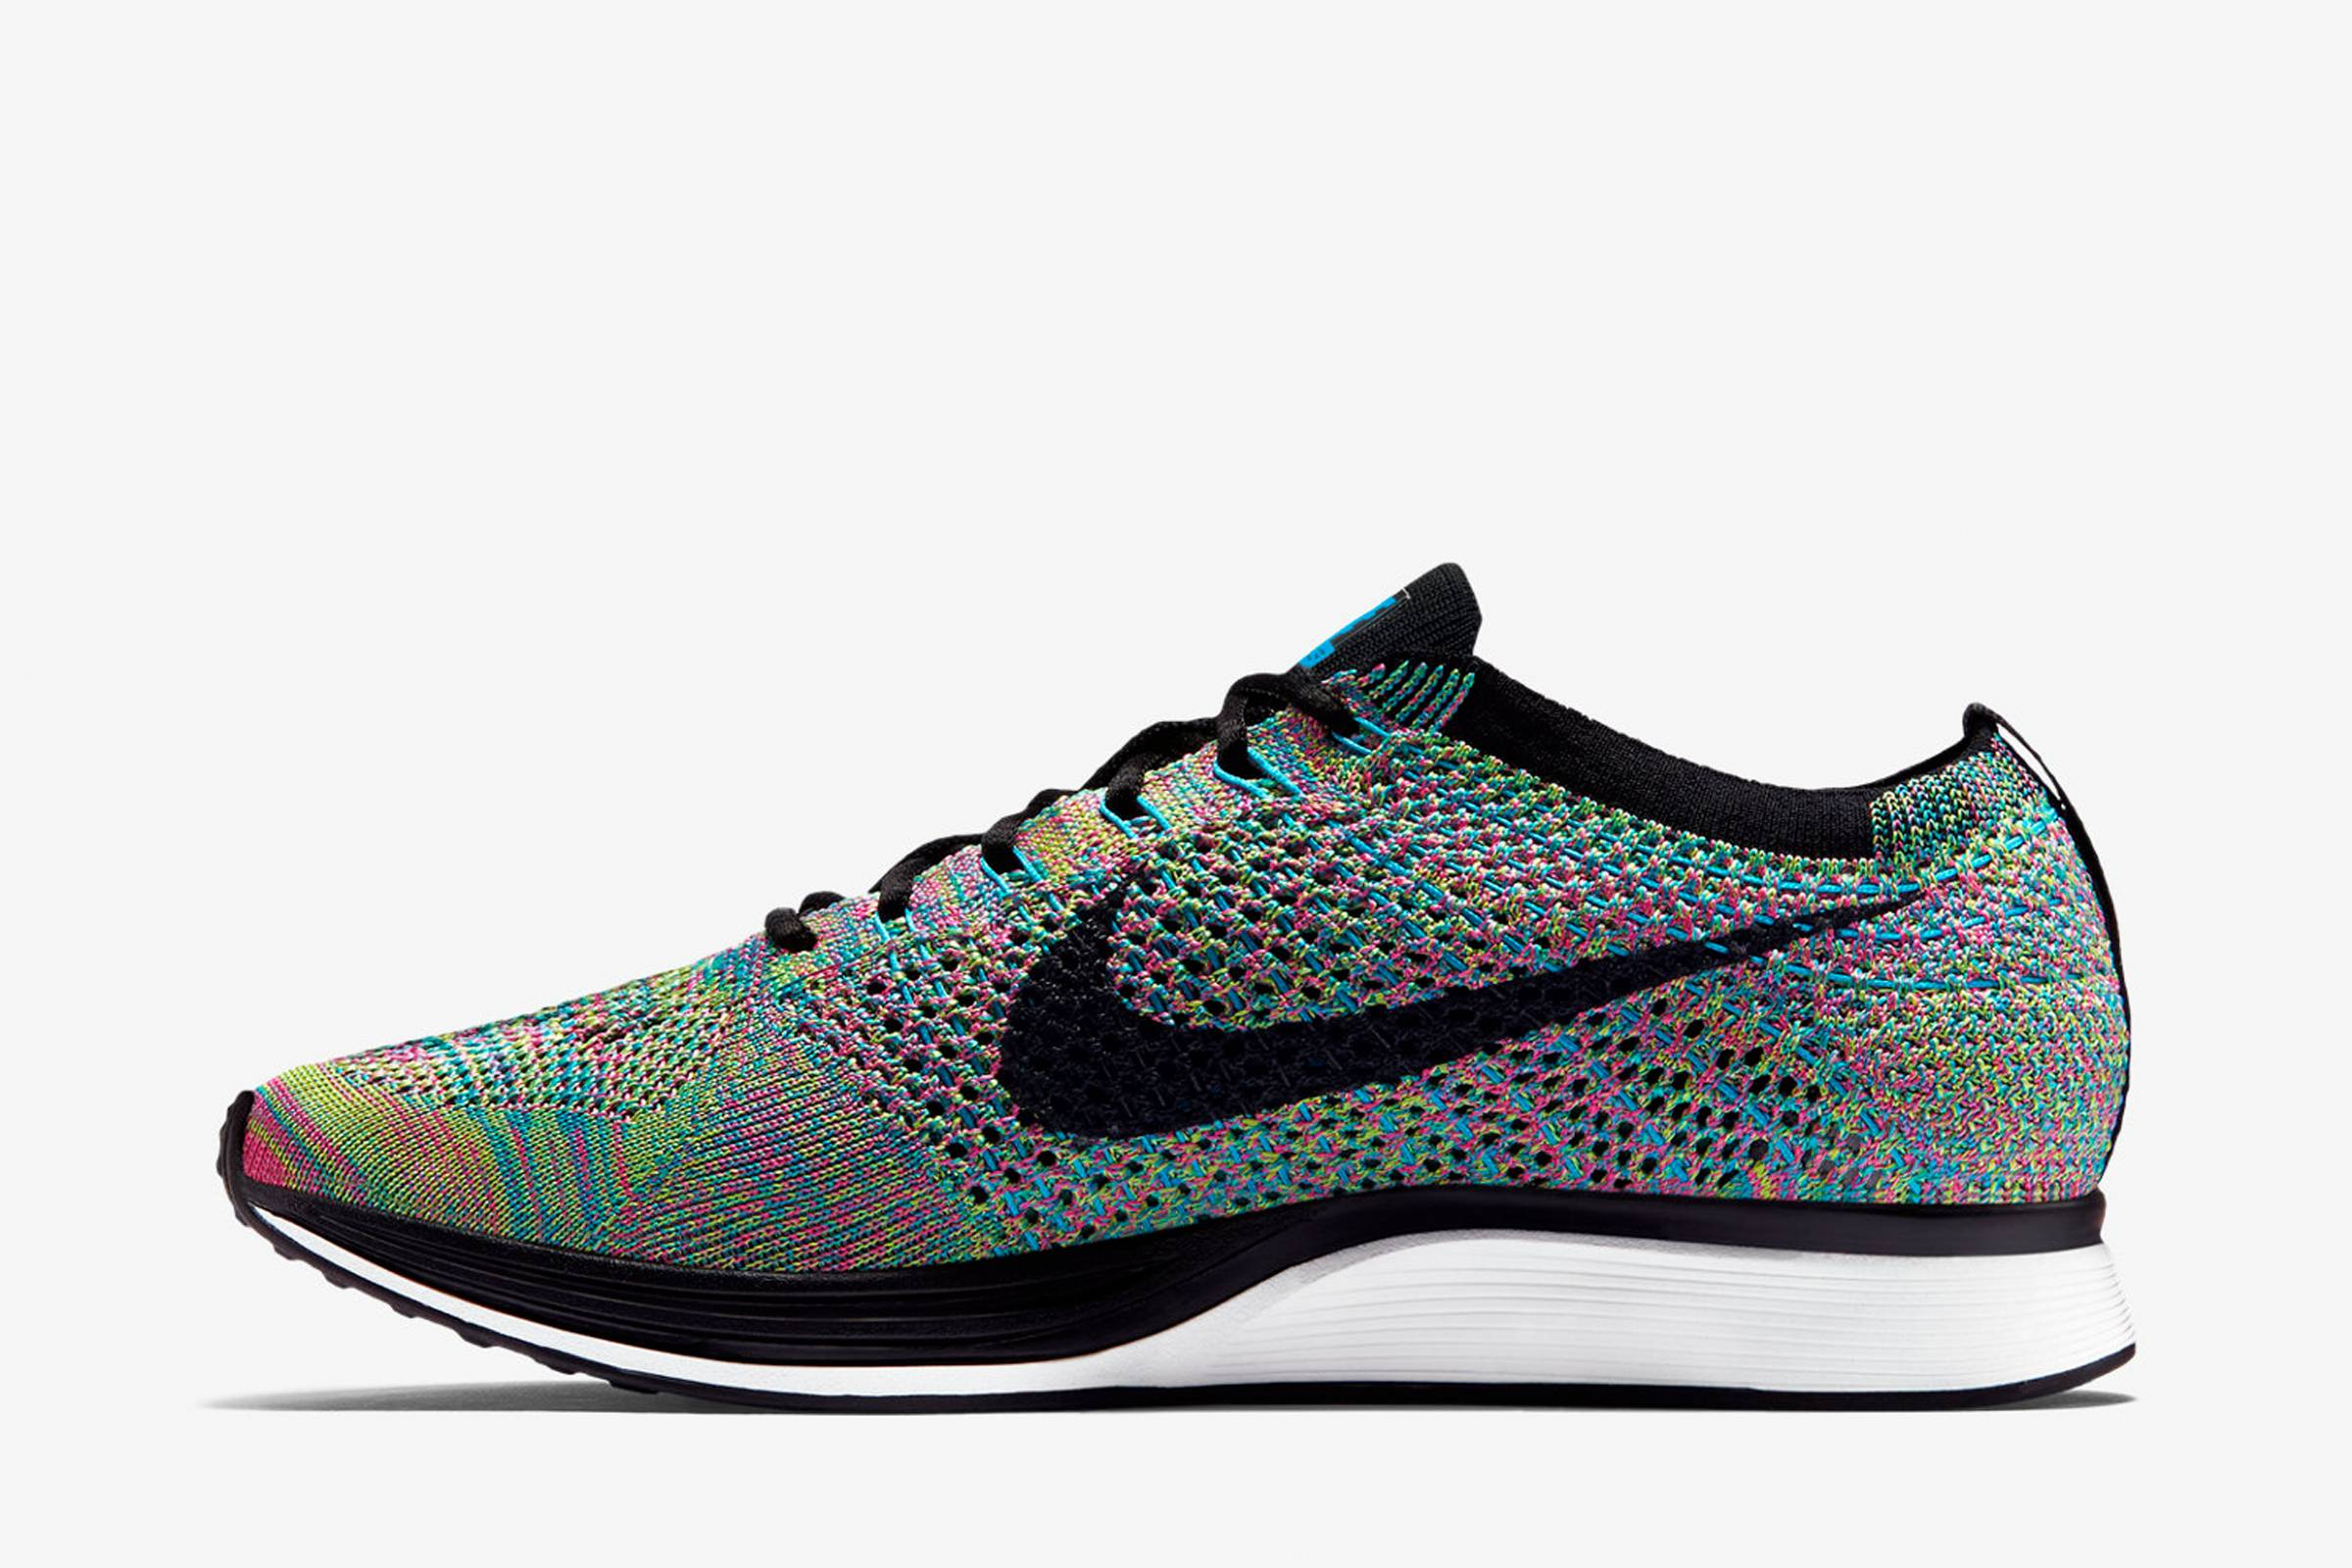 e525afc8f3531 Few shoes score as highly in both sports and style than the Nike Flyknit  Racer. Flyknit